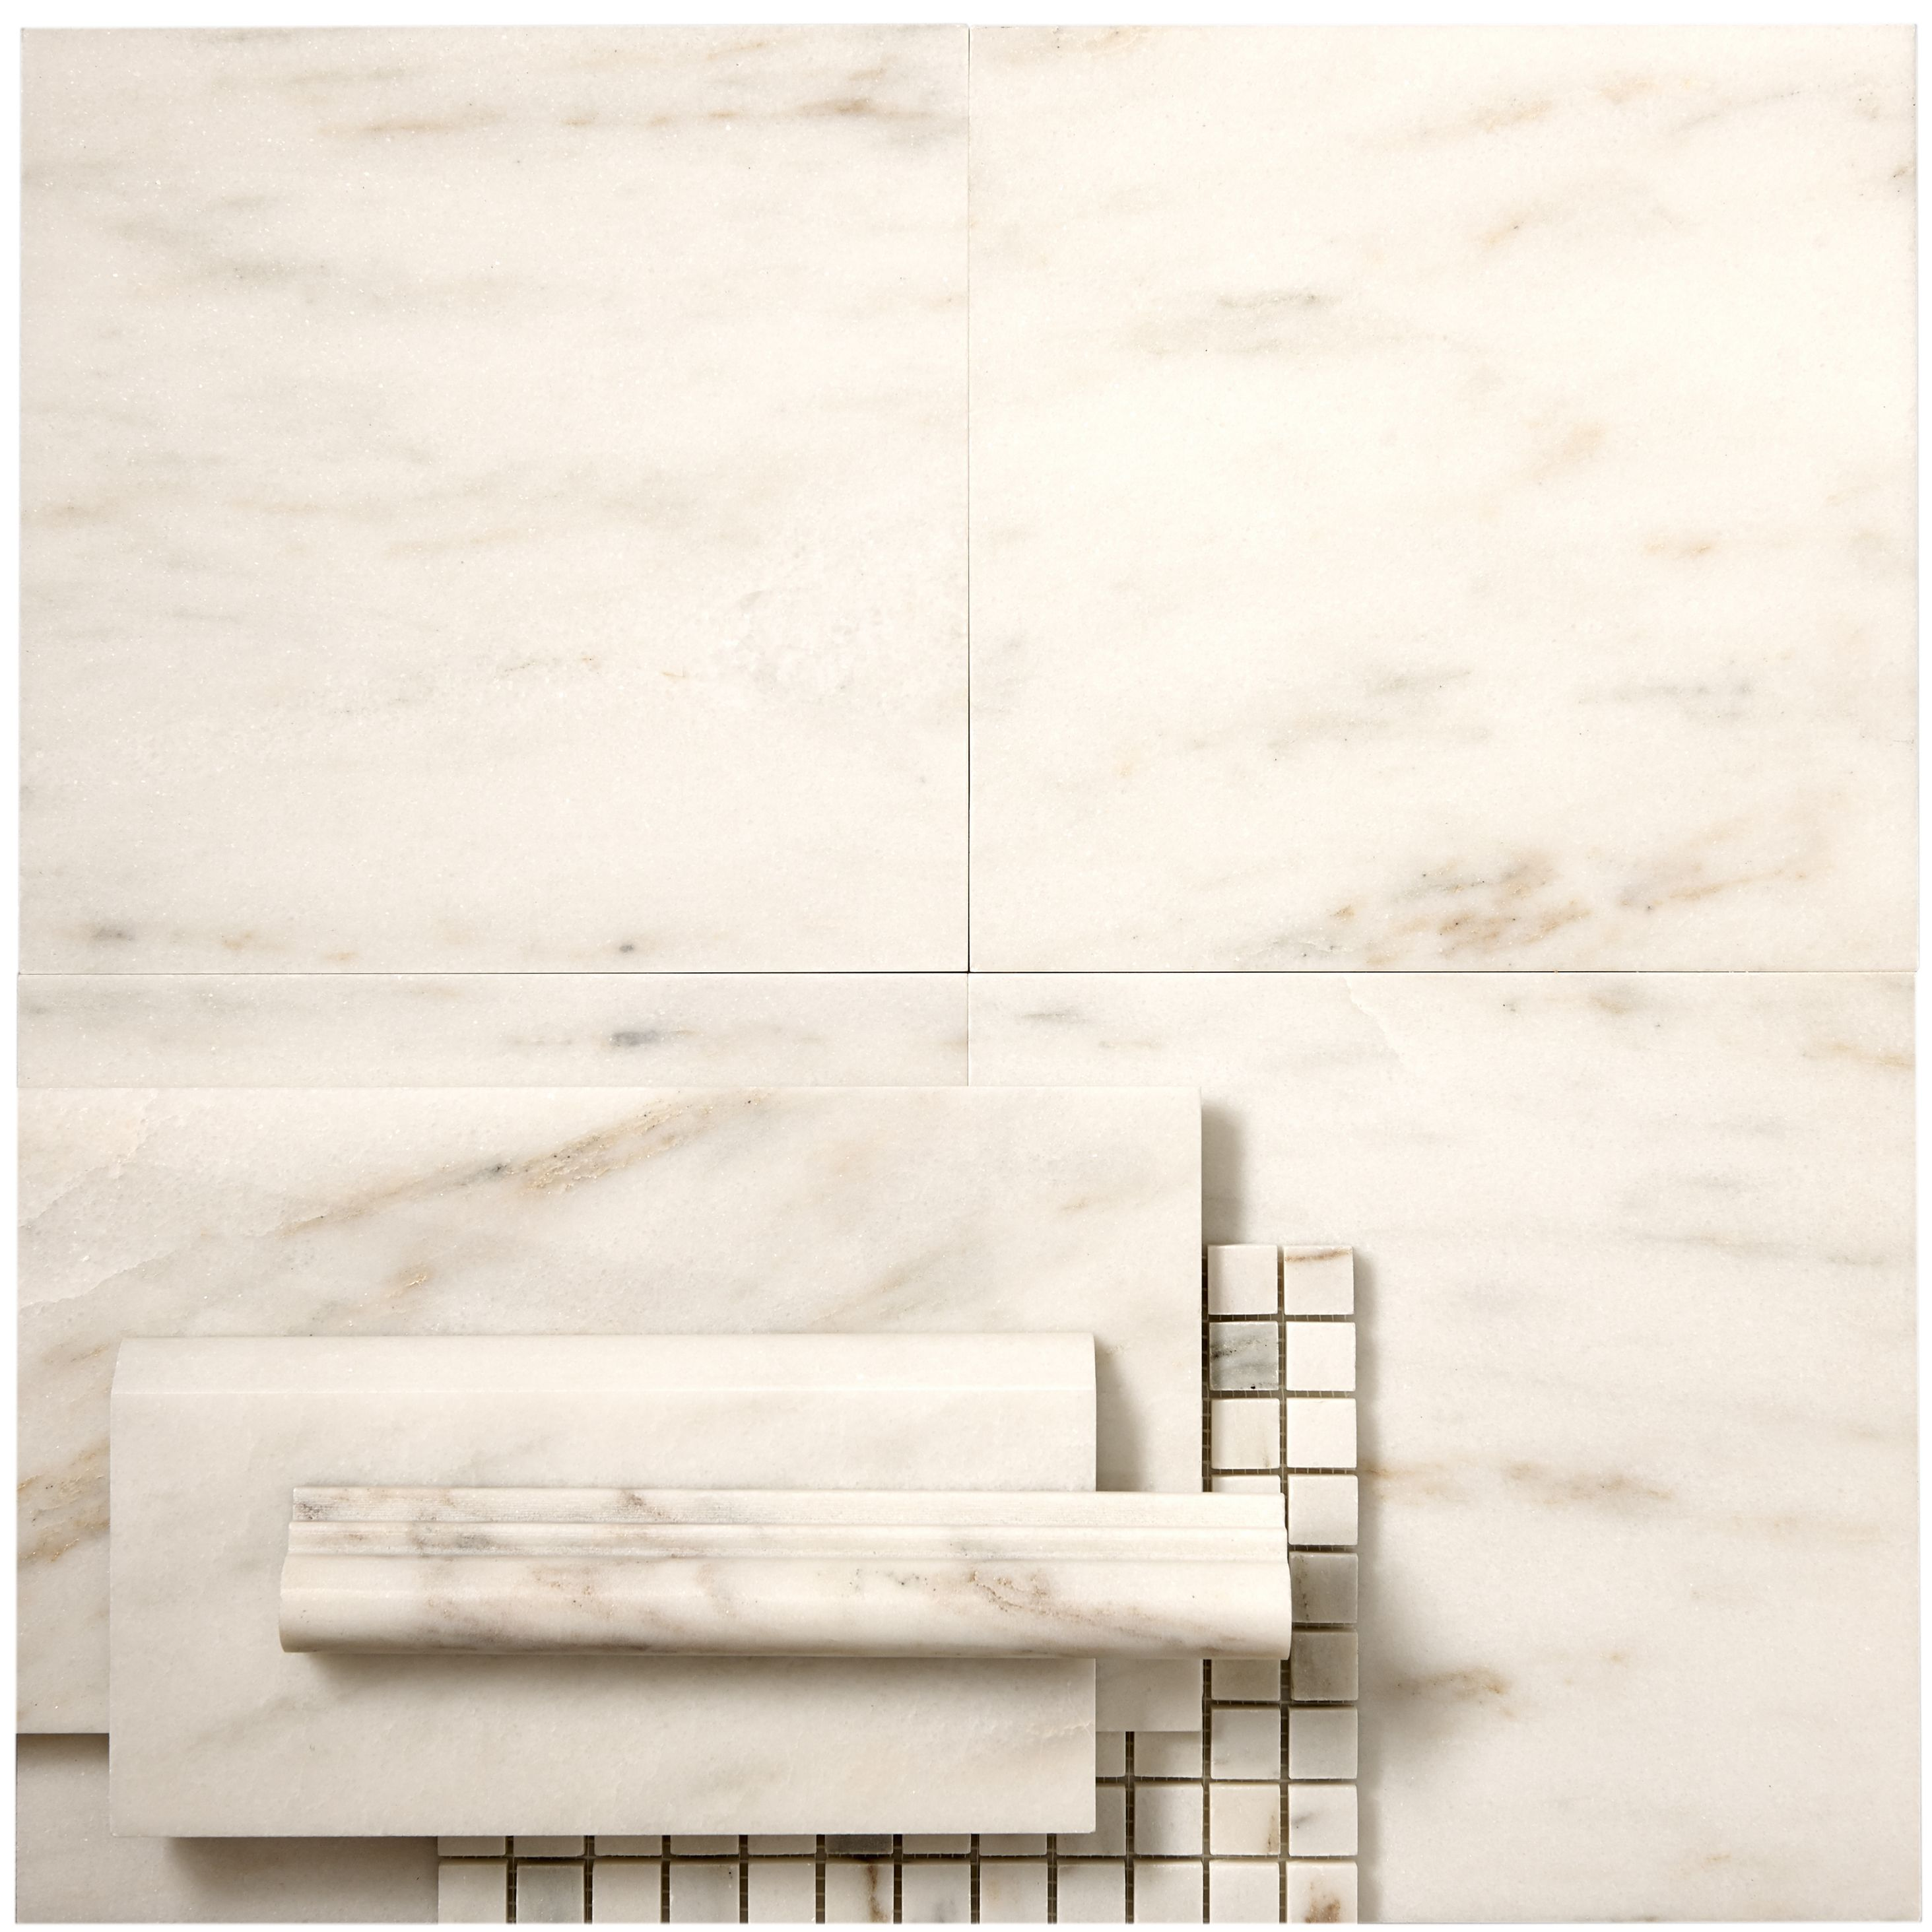 Imperial danby bathroom tile o p russo residence pinterest waterworks explore waterworks online waterworks dailygadgetfo Image collections